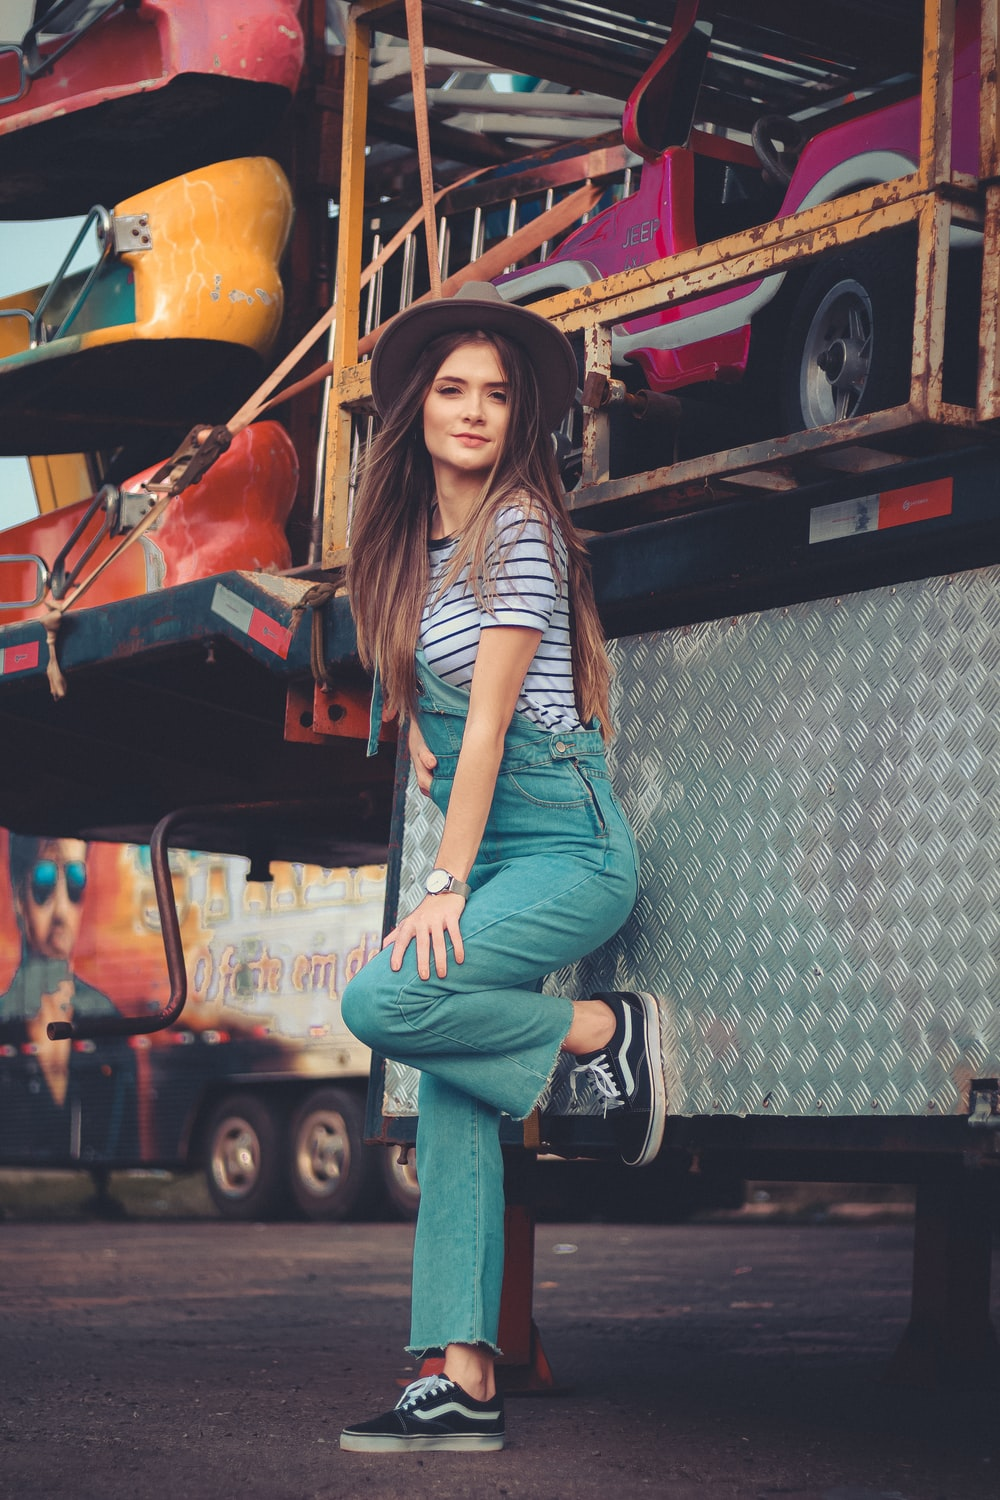 woman leaning on truck